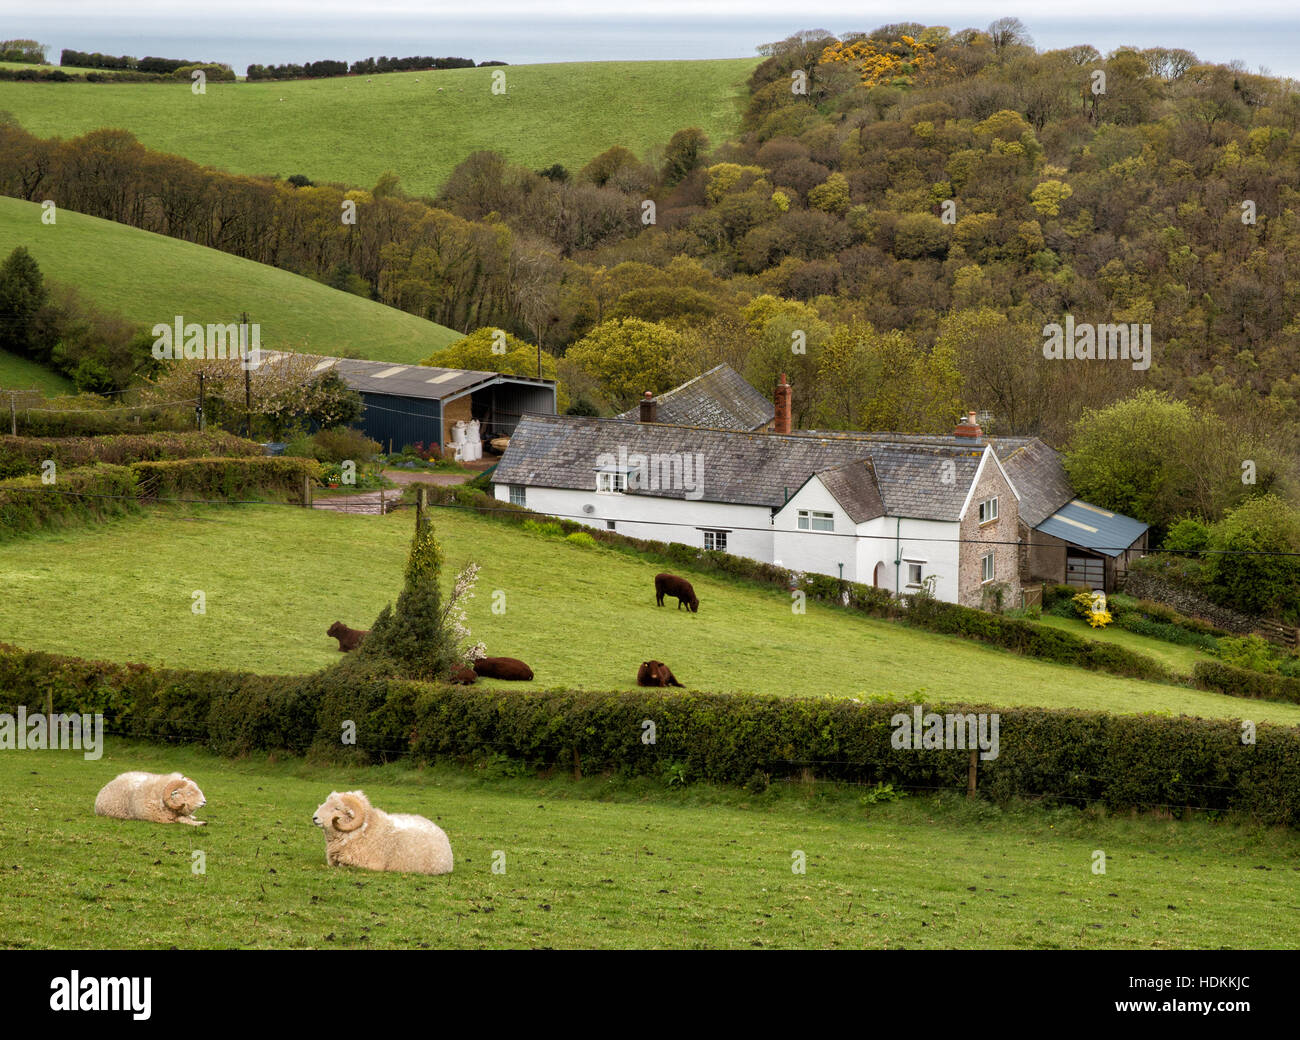 Ash Farm near Porlock in Exmoor where Coleridge reputedly stayed when the Person from Porlock interrupted his writing - Stock Image